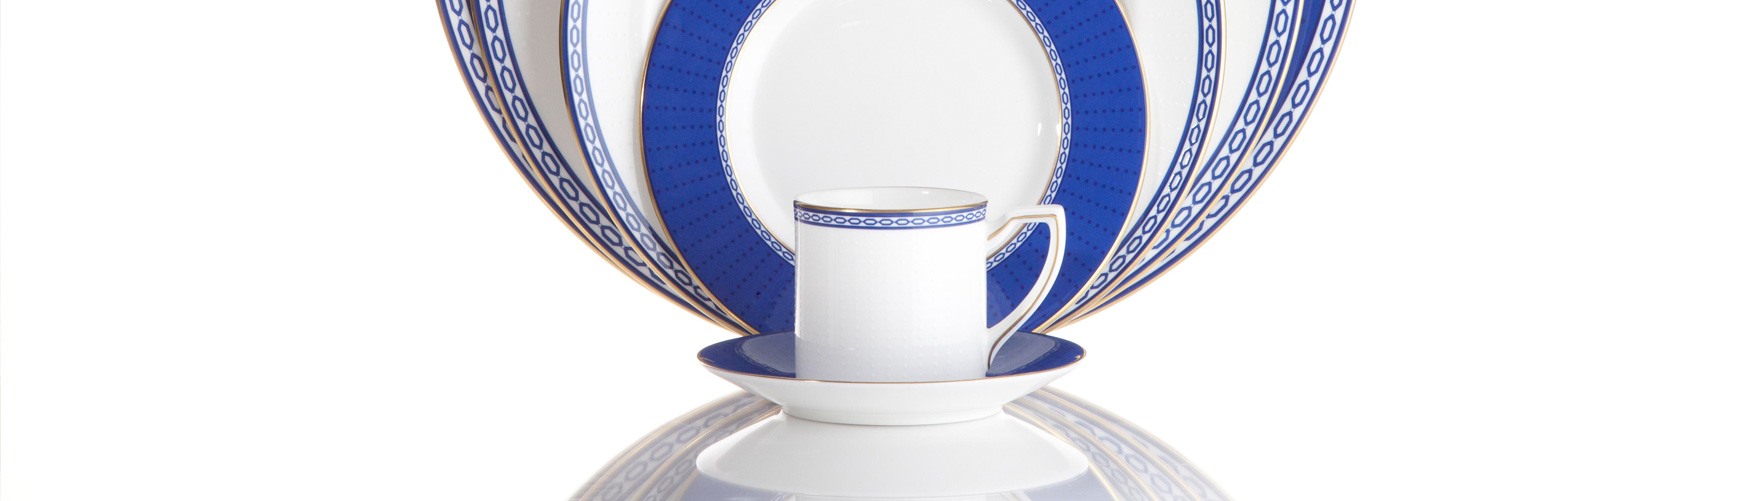 Walpole Fine Bone China   Manufacturer of luxurious high quality bone china  in England  UKWalpole Fine Bone China   Manufacturer of luxurious high quality  . Fine Bone China Dinnerware Sets Uk. Home Design Ideas